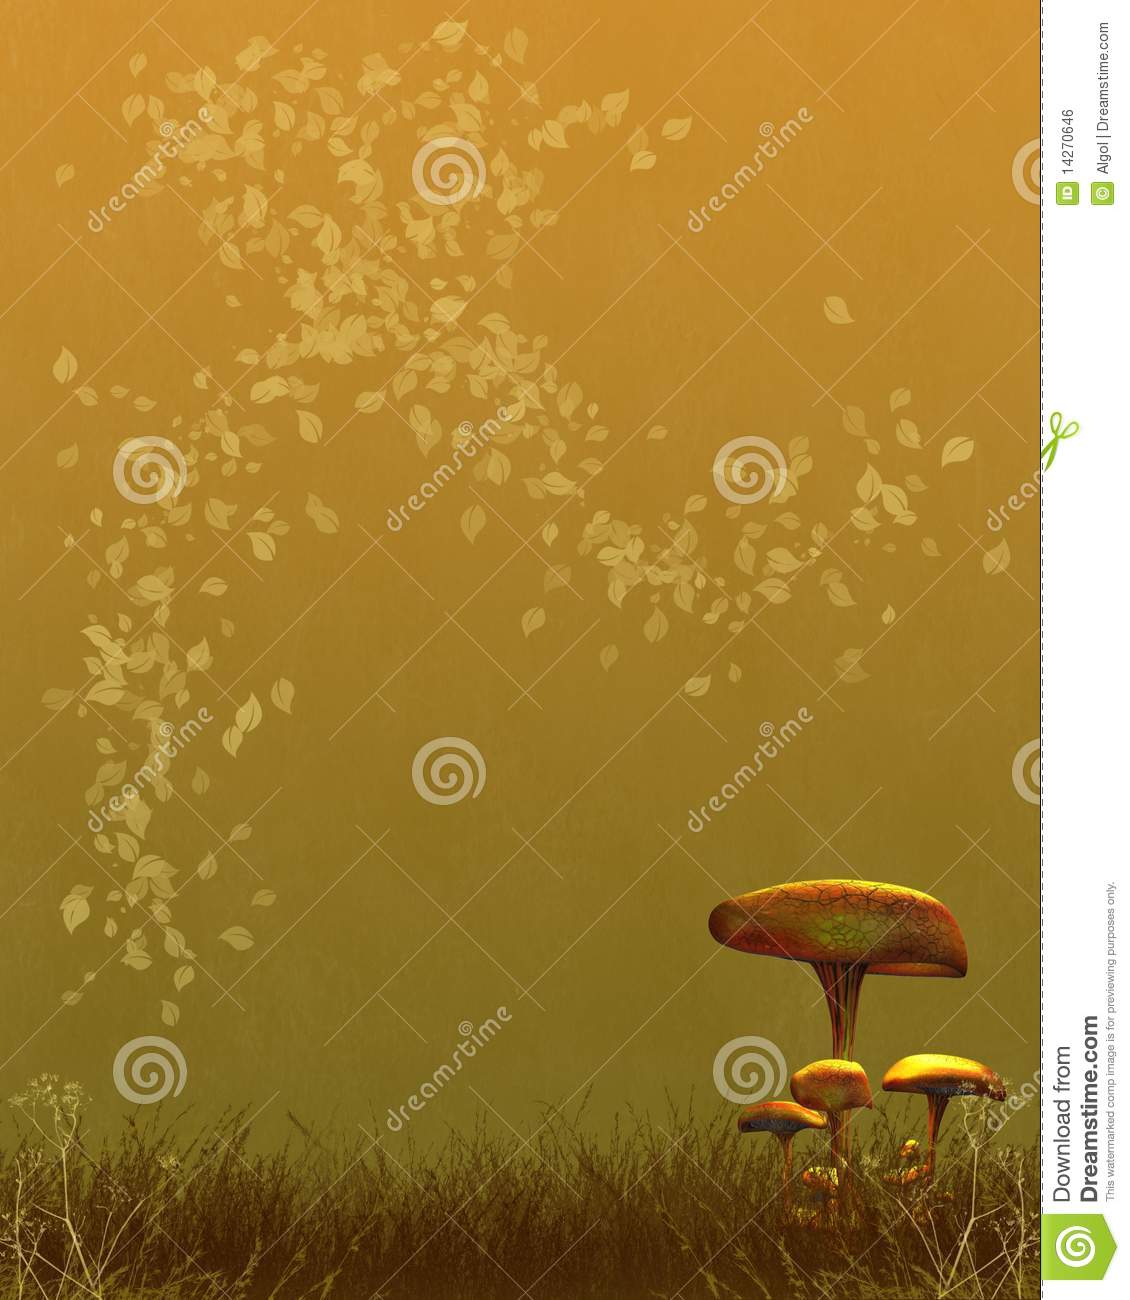 Free Wallpaper Fall Season Autumn Fall Toadstool Textured Background Paper Royalty